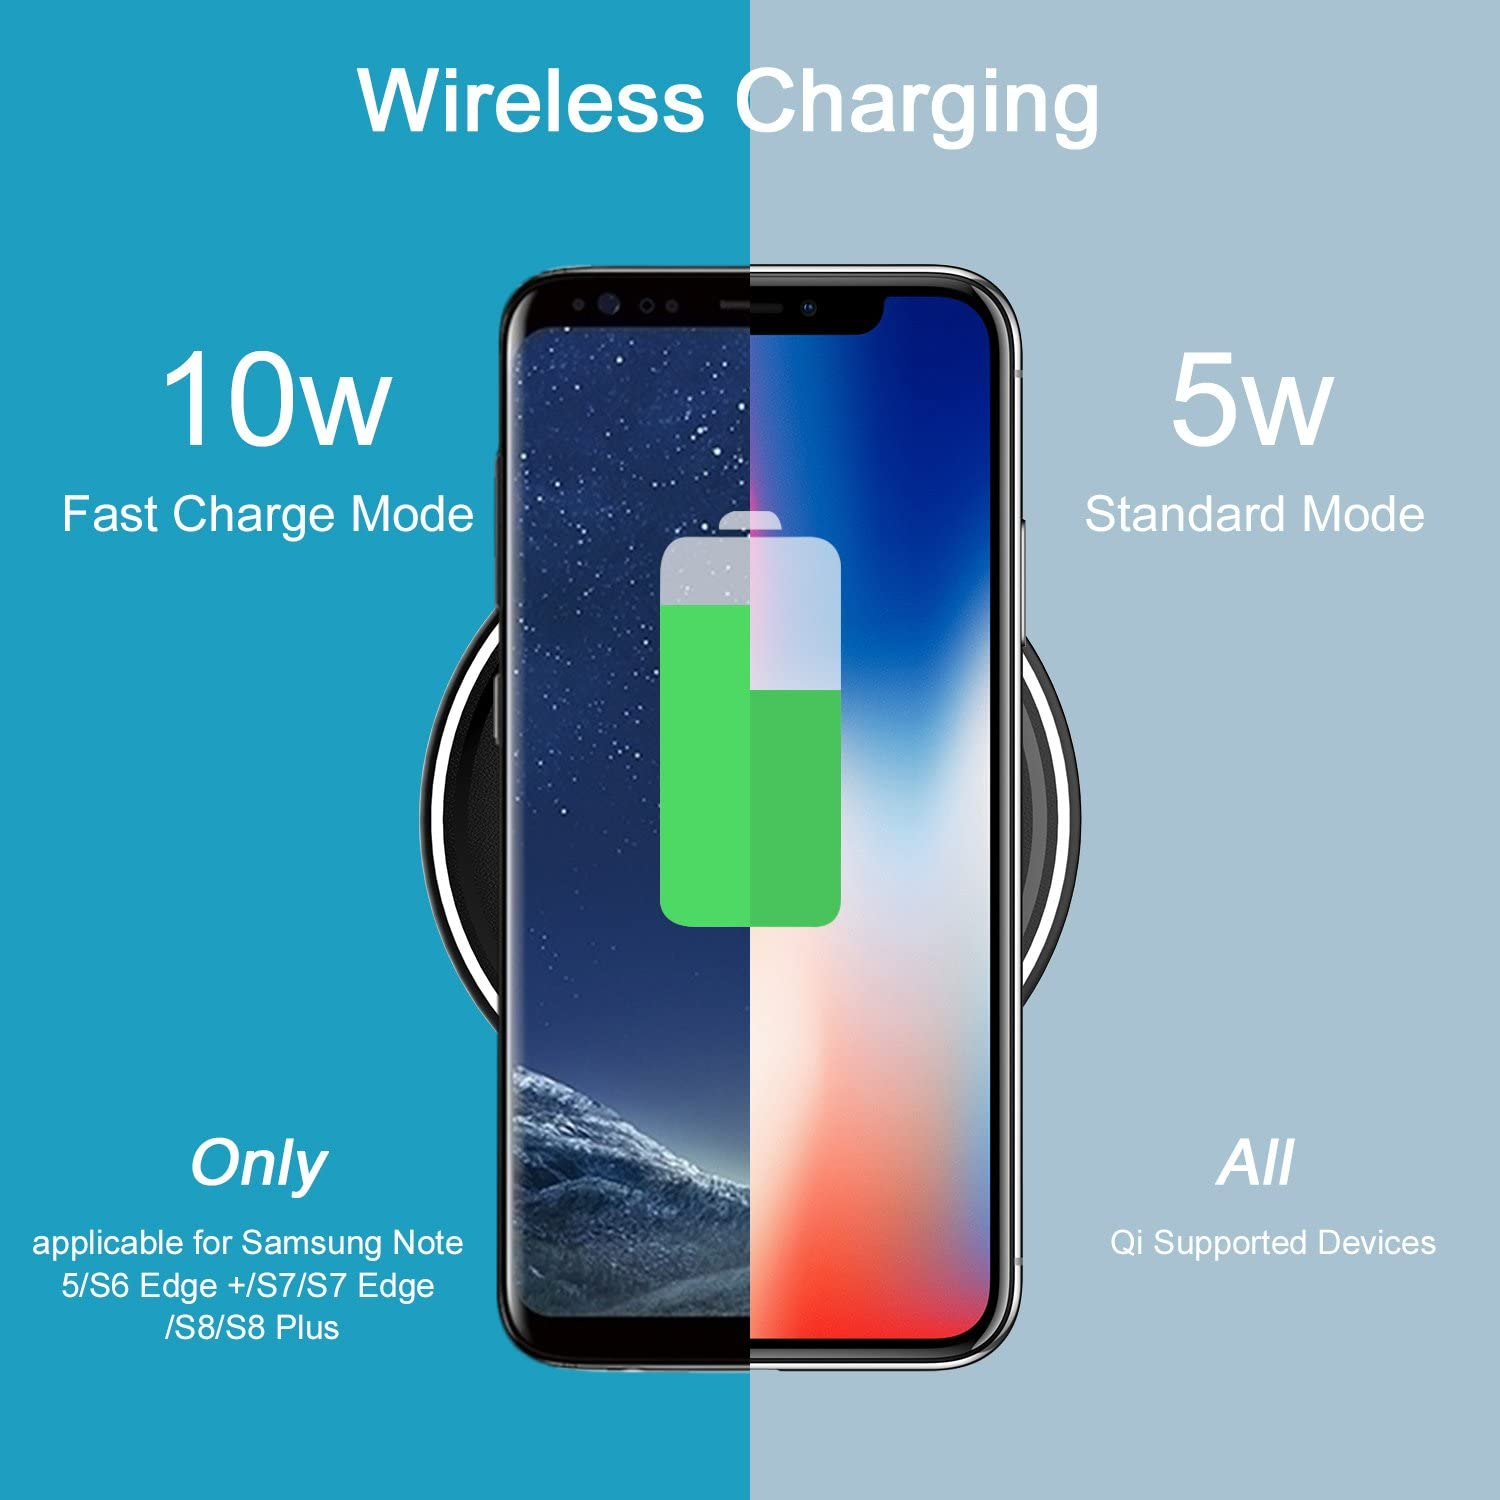 Galaxy Note 8 S8 Compatible for iOS and Androd System,Suitable for iPhone X,8 Plus,8 S8 P White Fast Wireless Charger,Fast Charge for Androd,QI Wireless Charging Pad by ICONFLANG S7 Edge Etc-